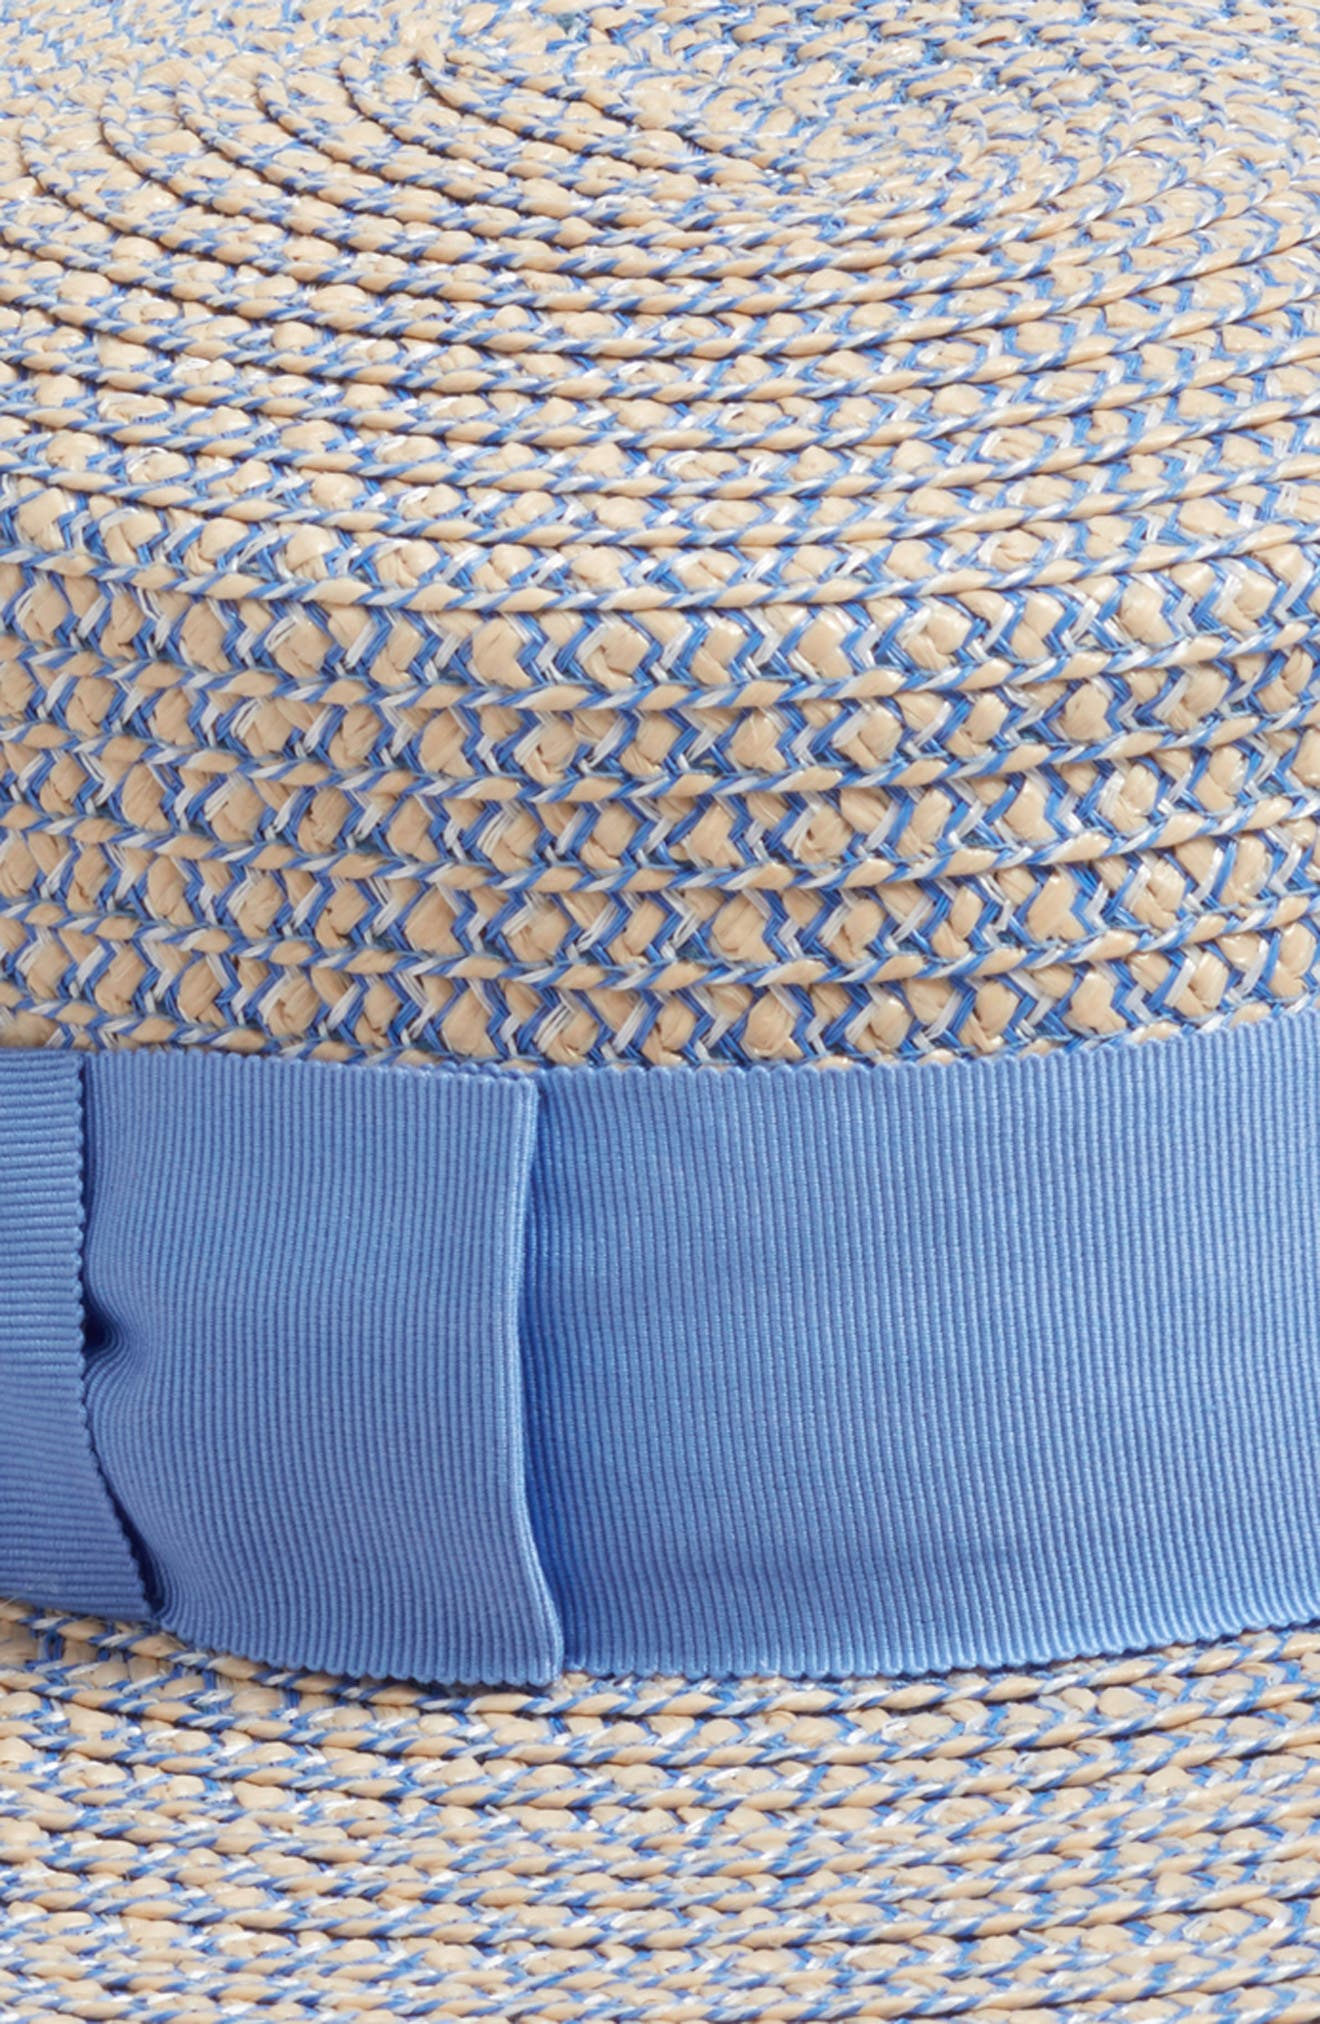 'Gondolier' Boater Hat,                             Alternate thumbnail 2, color,                             405